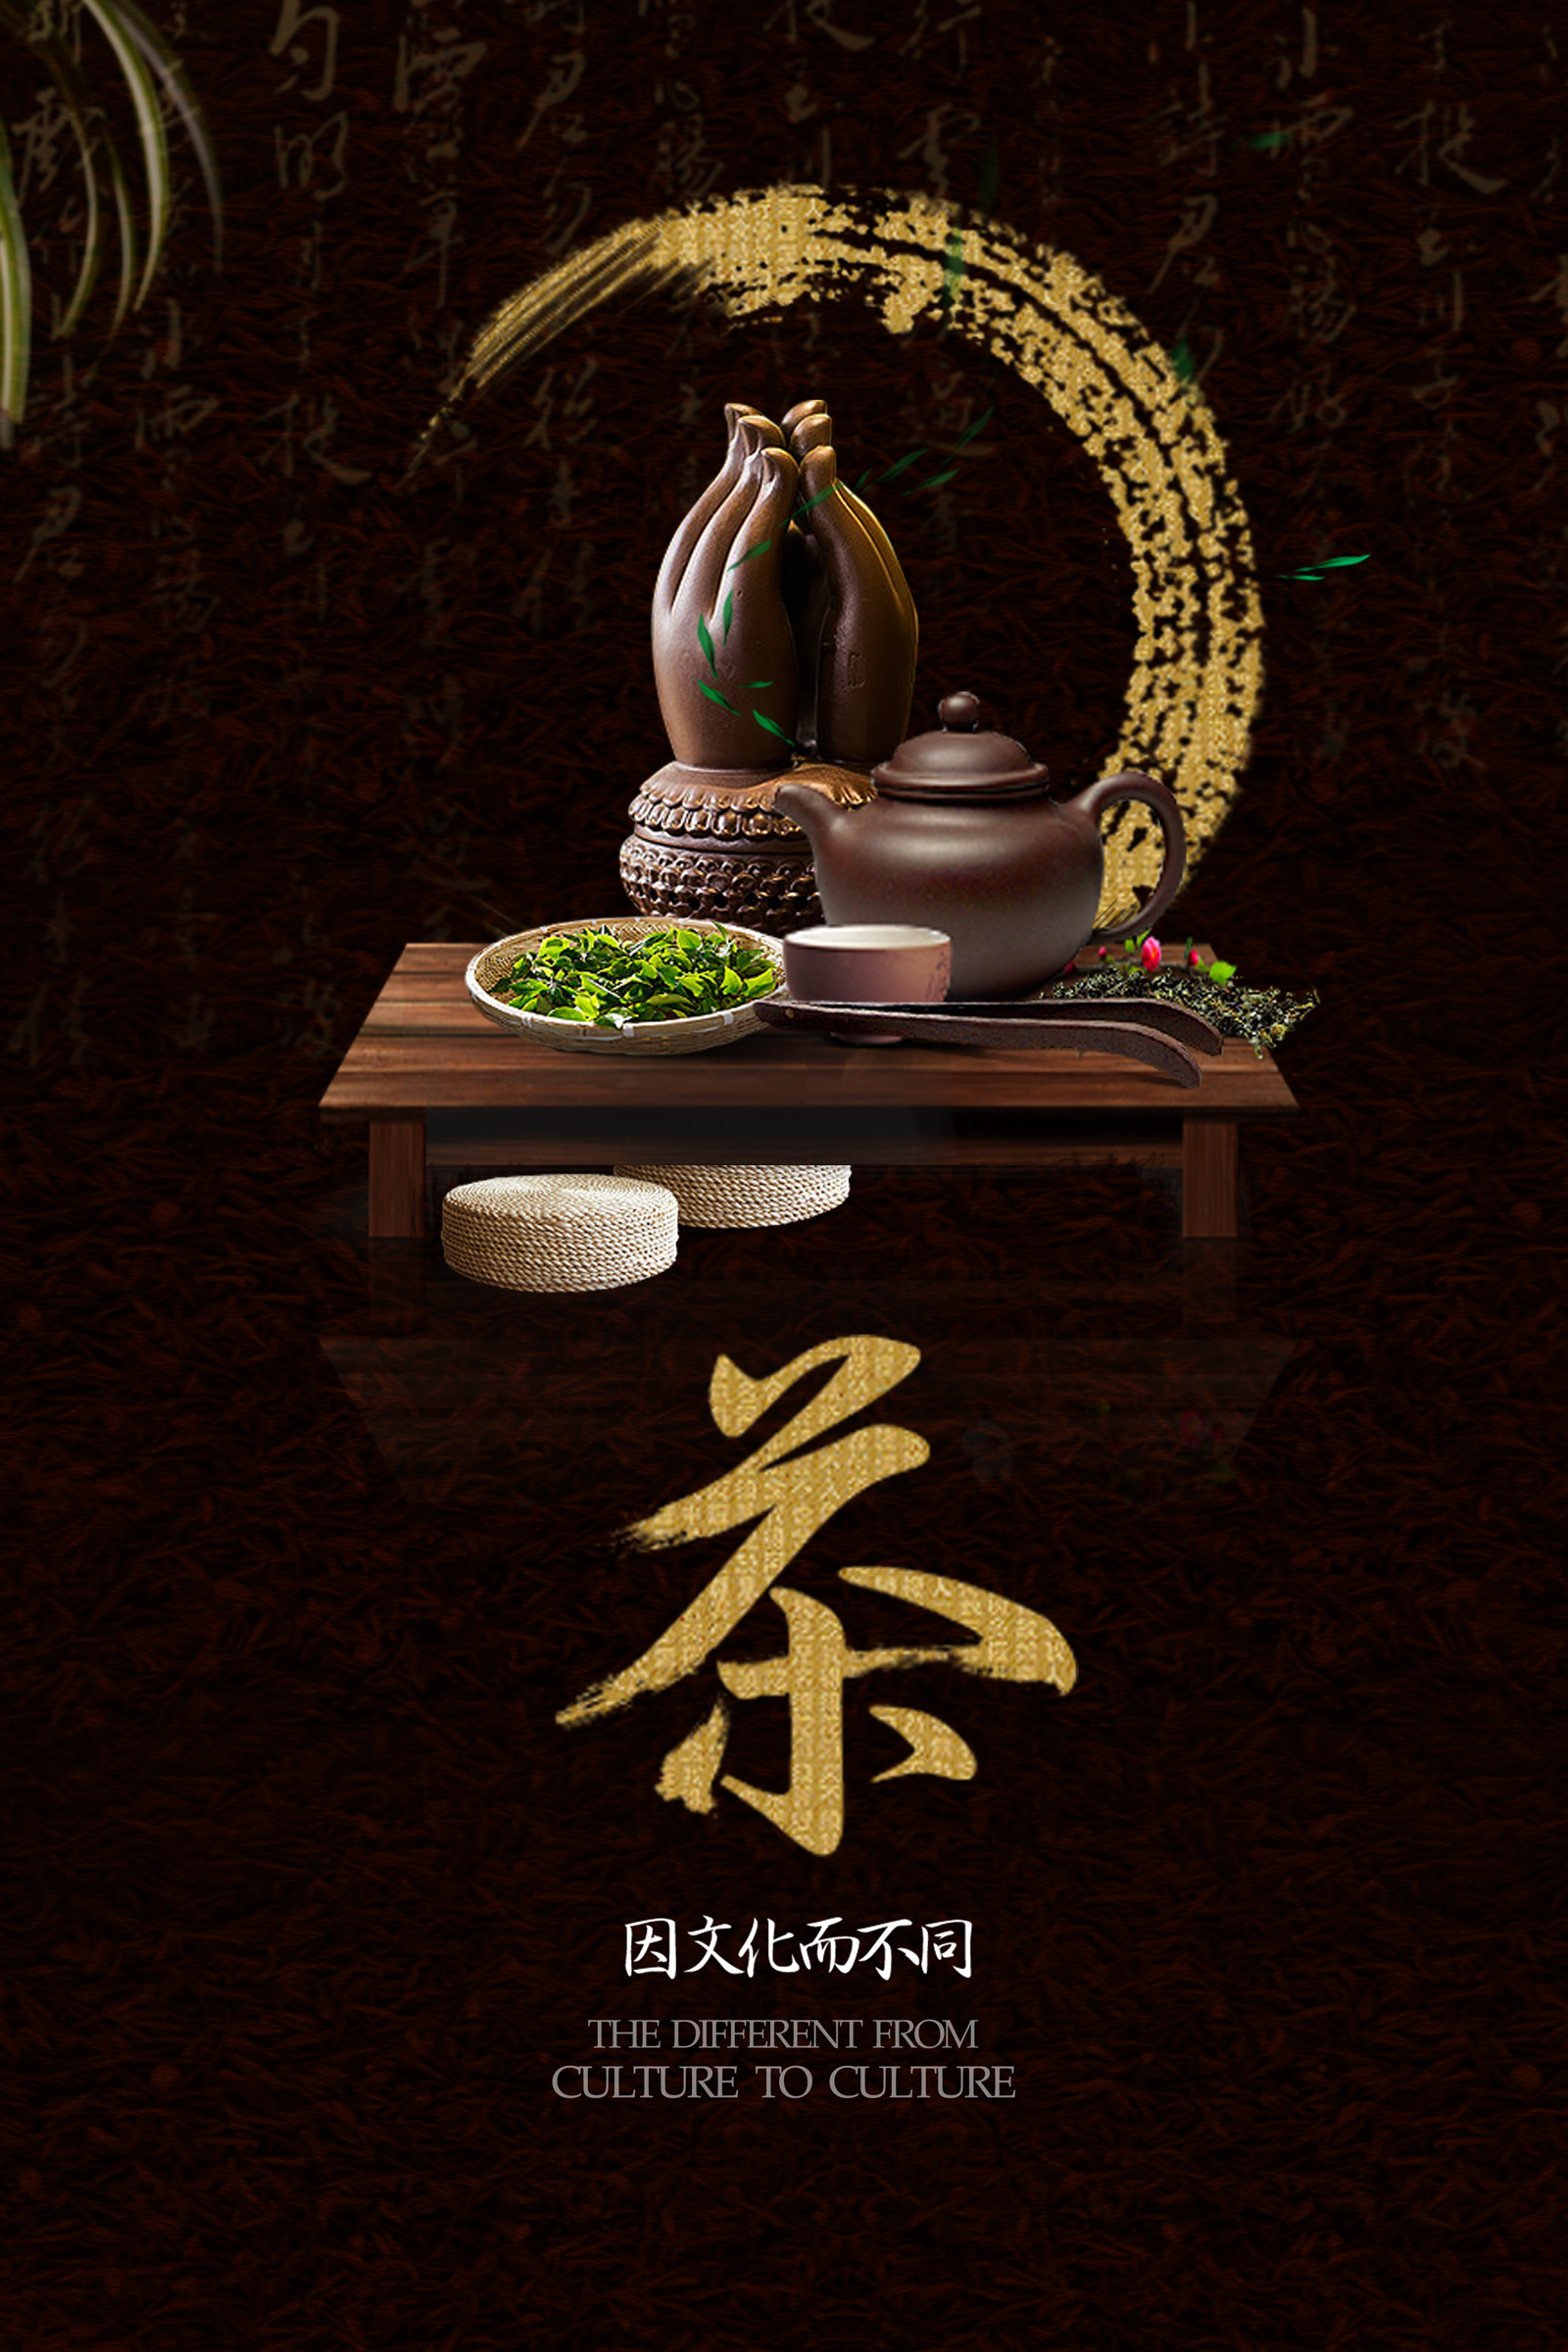 Chinese tea culture posters PSD File Free Download